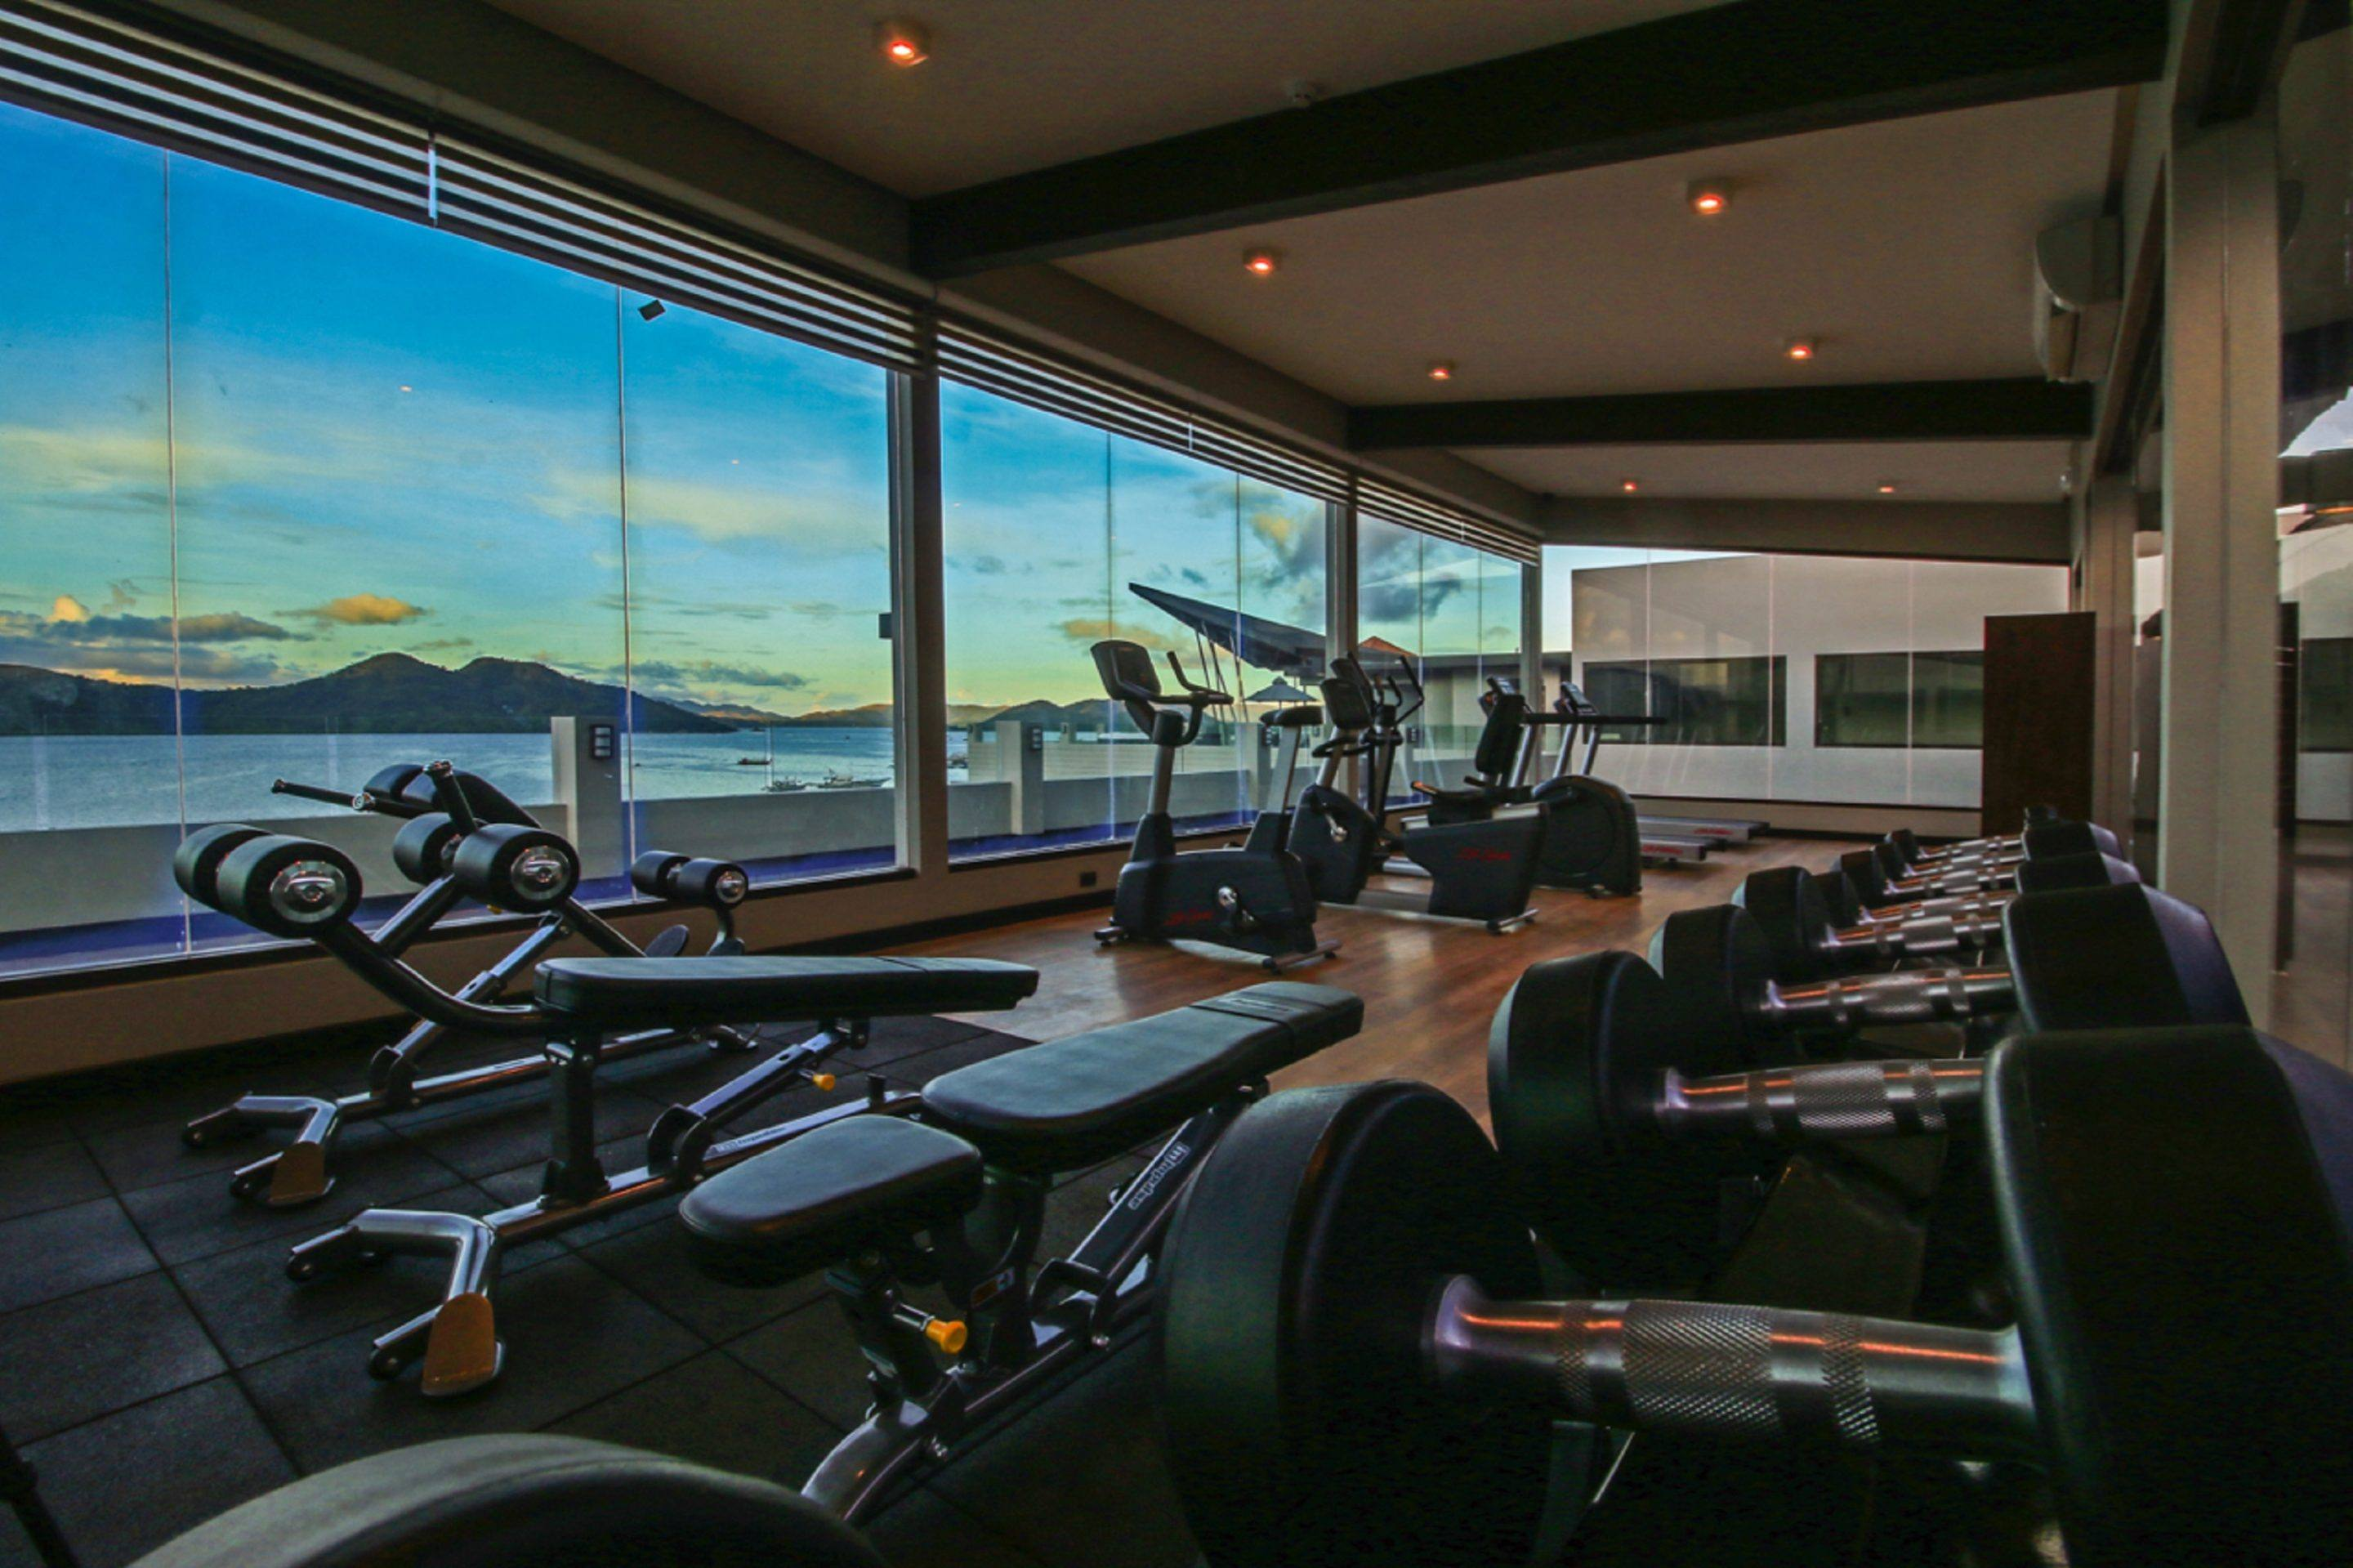 Gyms with the most amazing views in the world | Well+Good